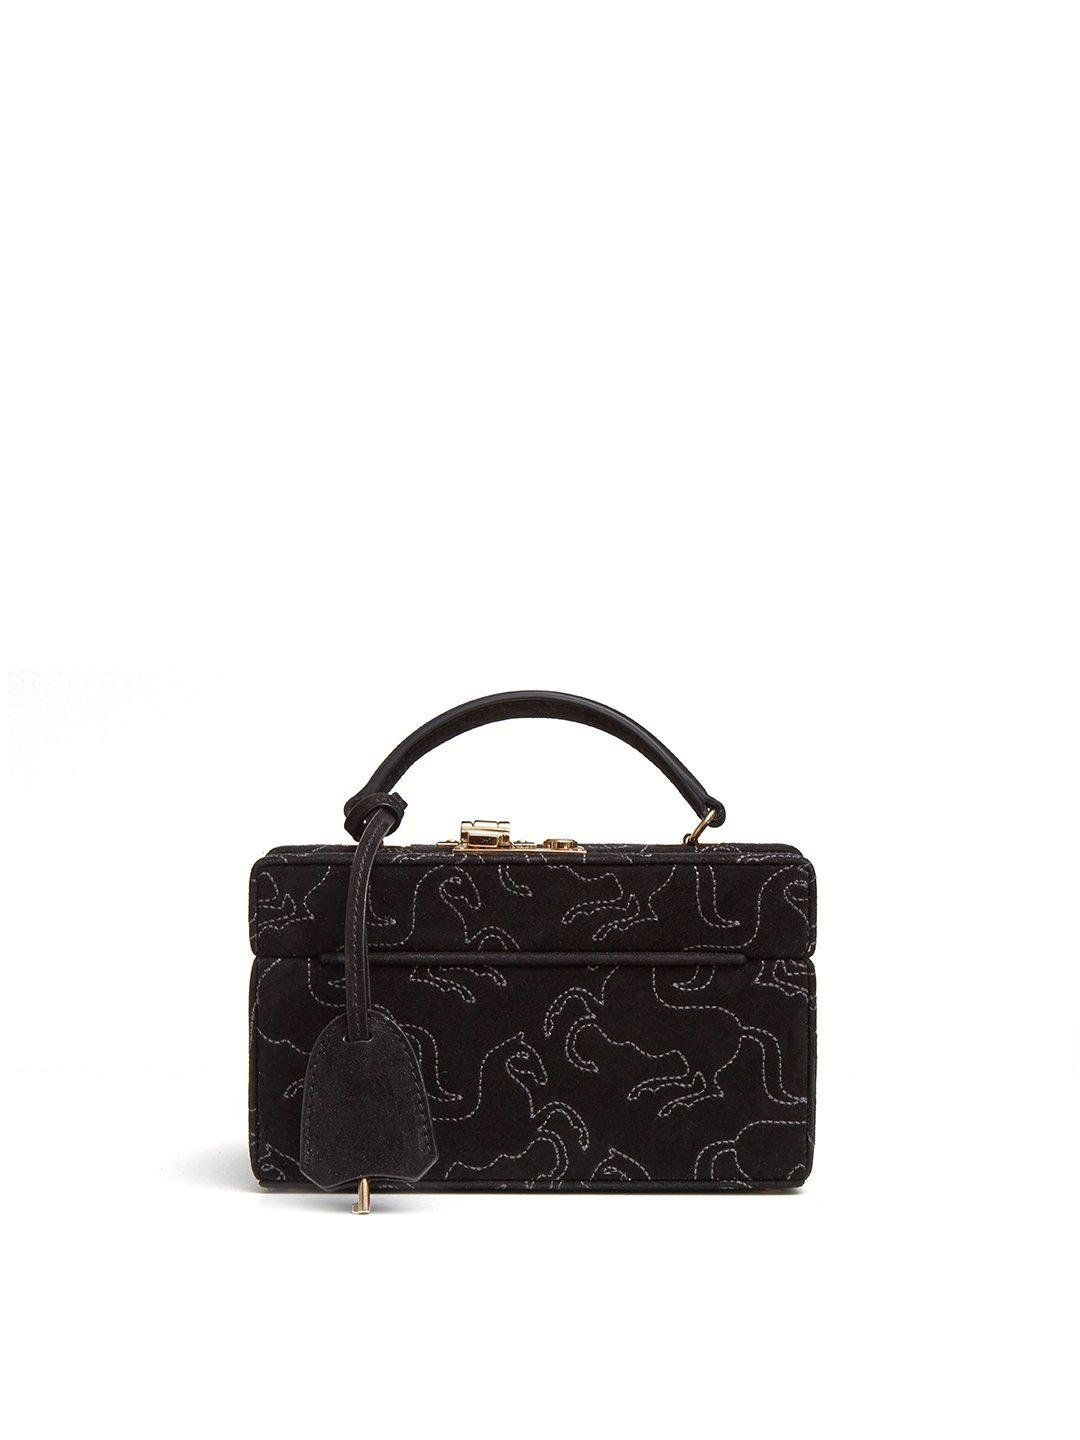 1845 Embroidered Suede Mini Trunk